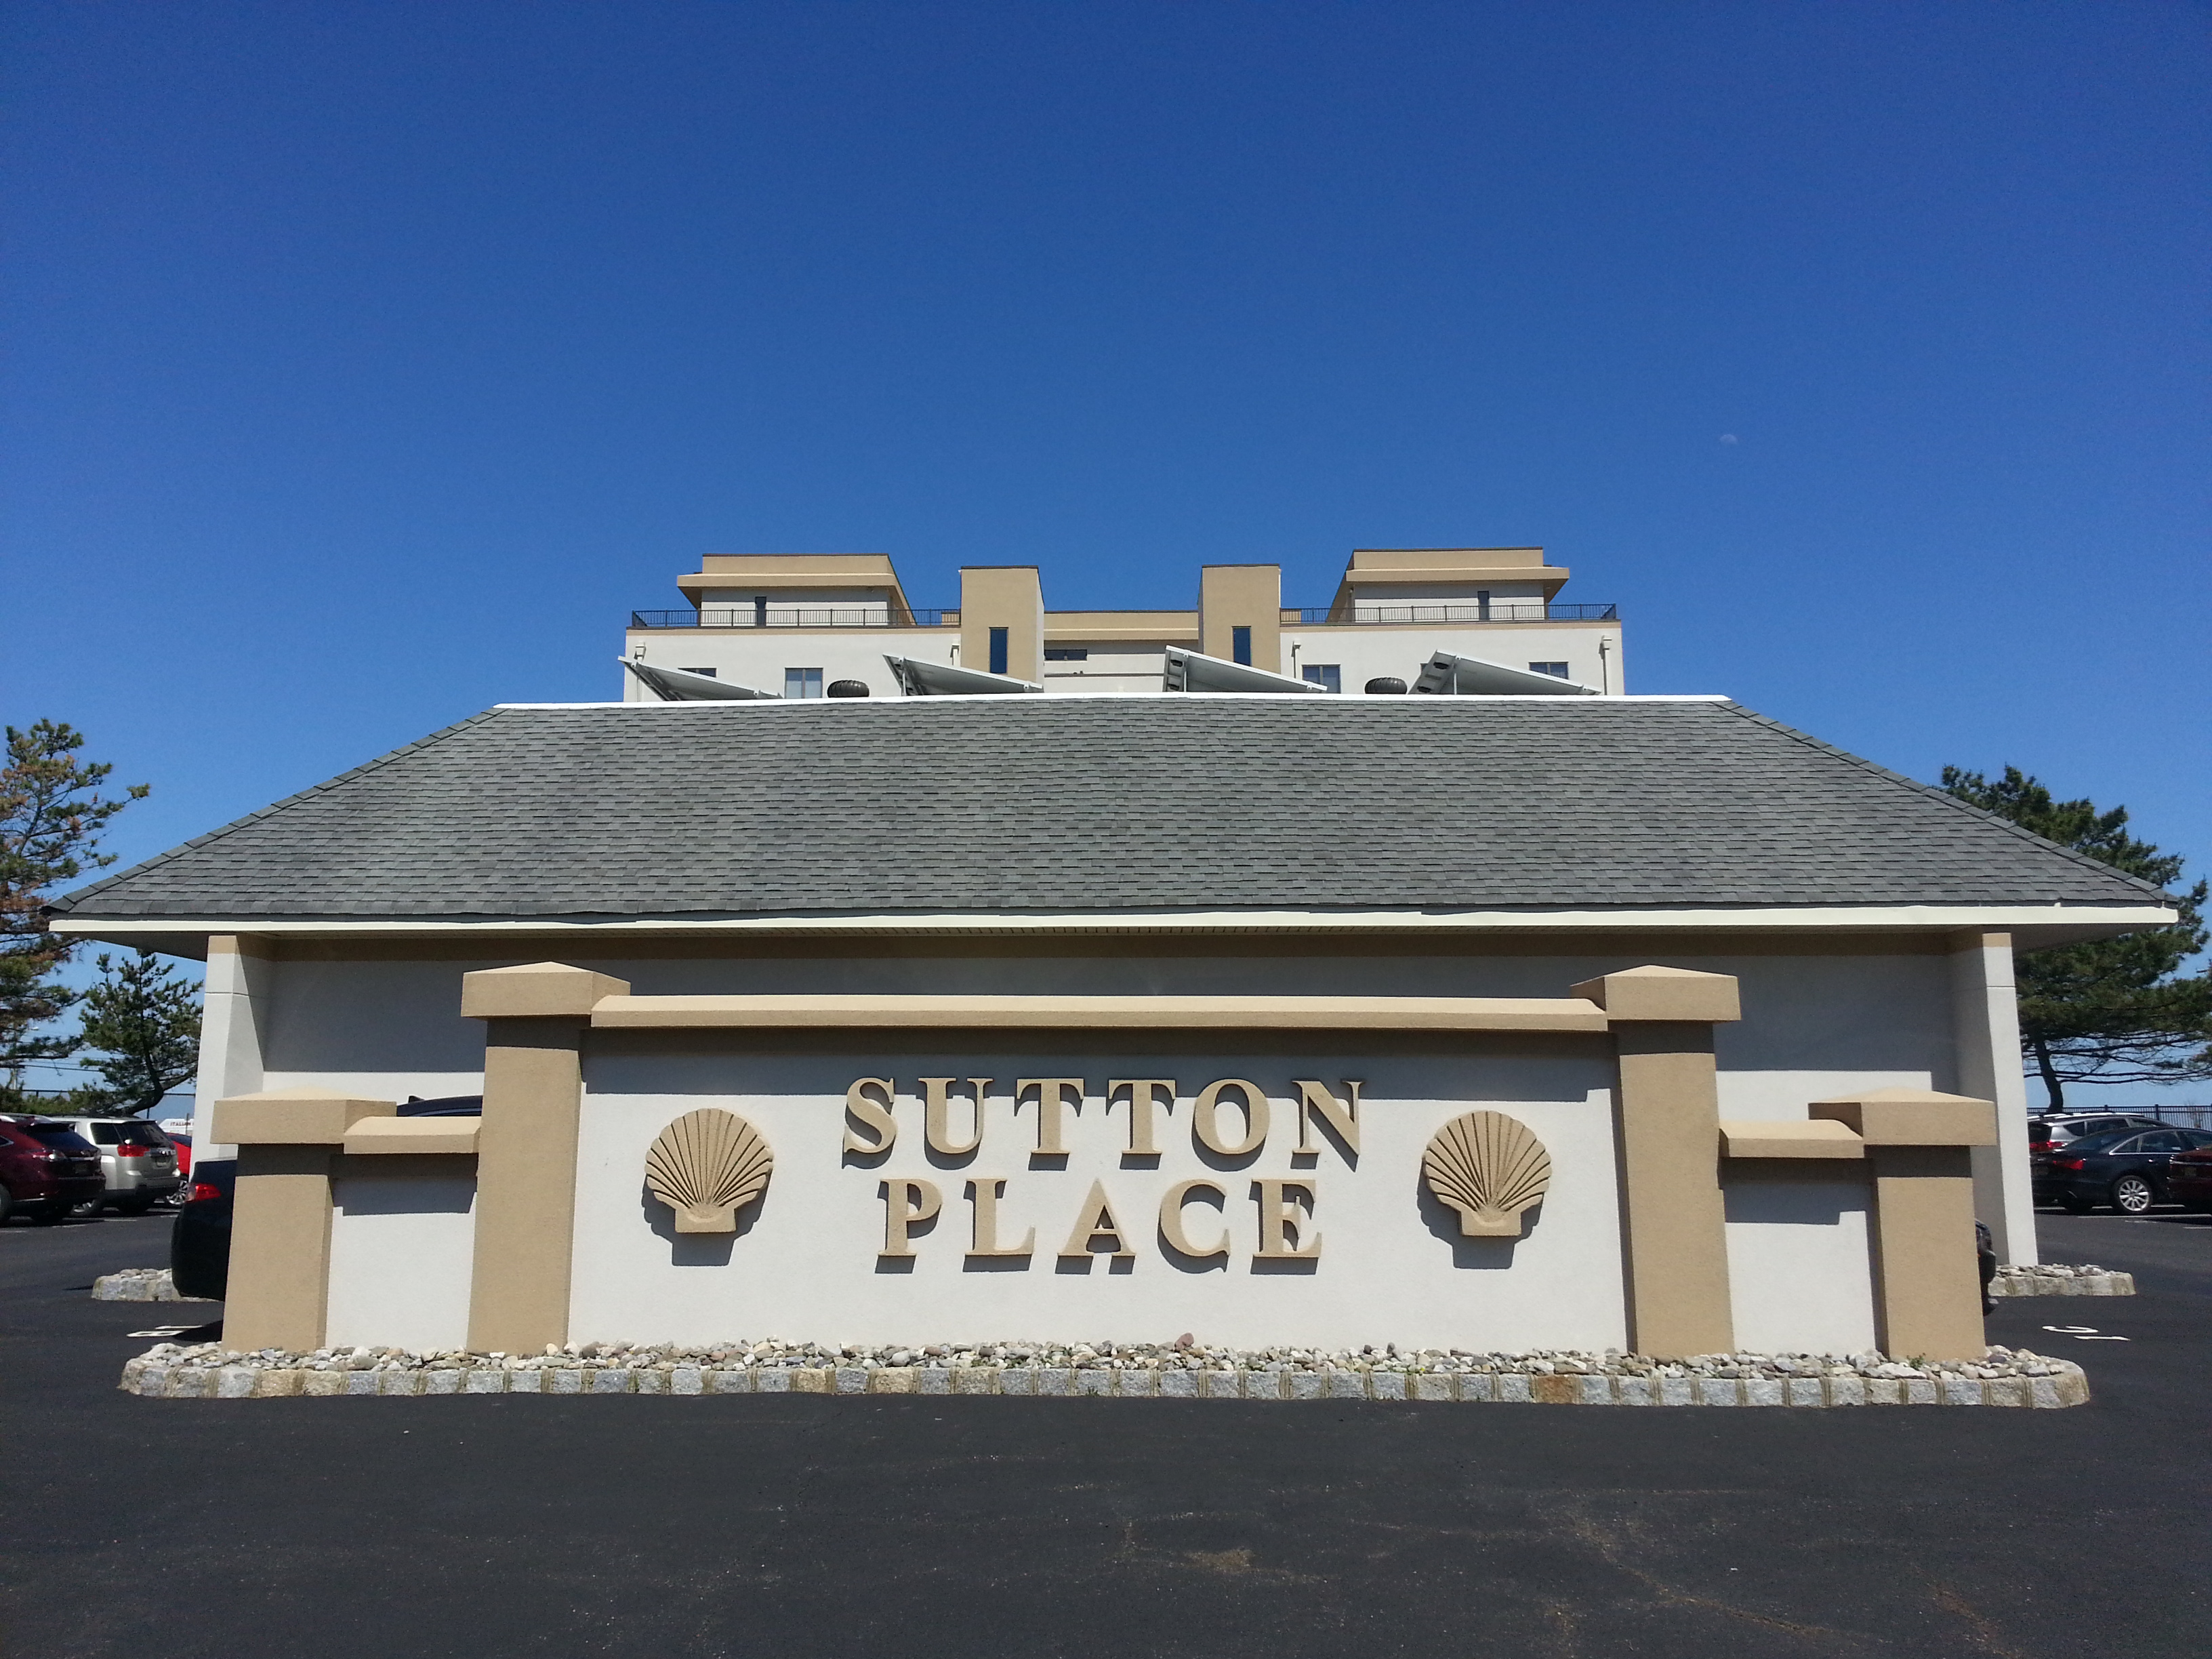 Located at 388 Ocean Ave. North, Sutton Place is a mid-rise condo on the Long Branch beachfront.